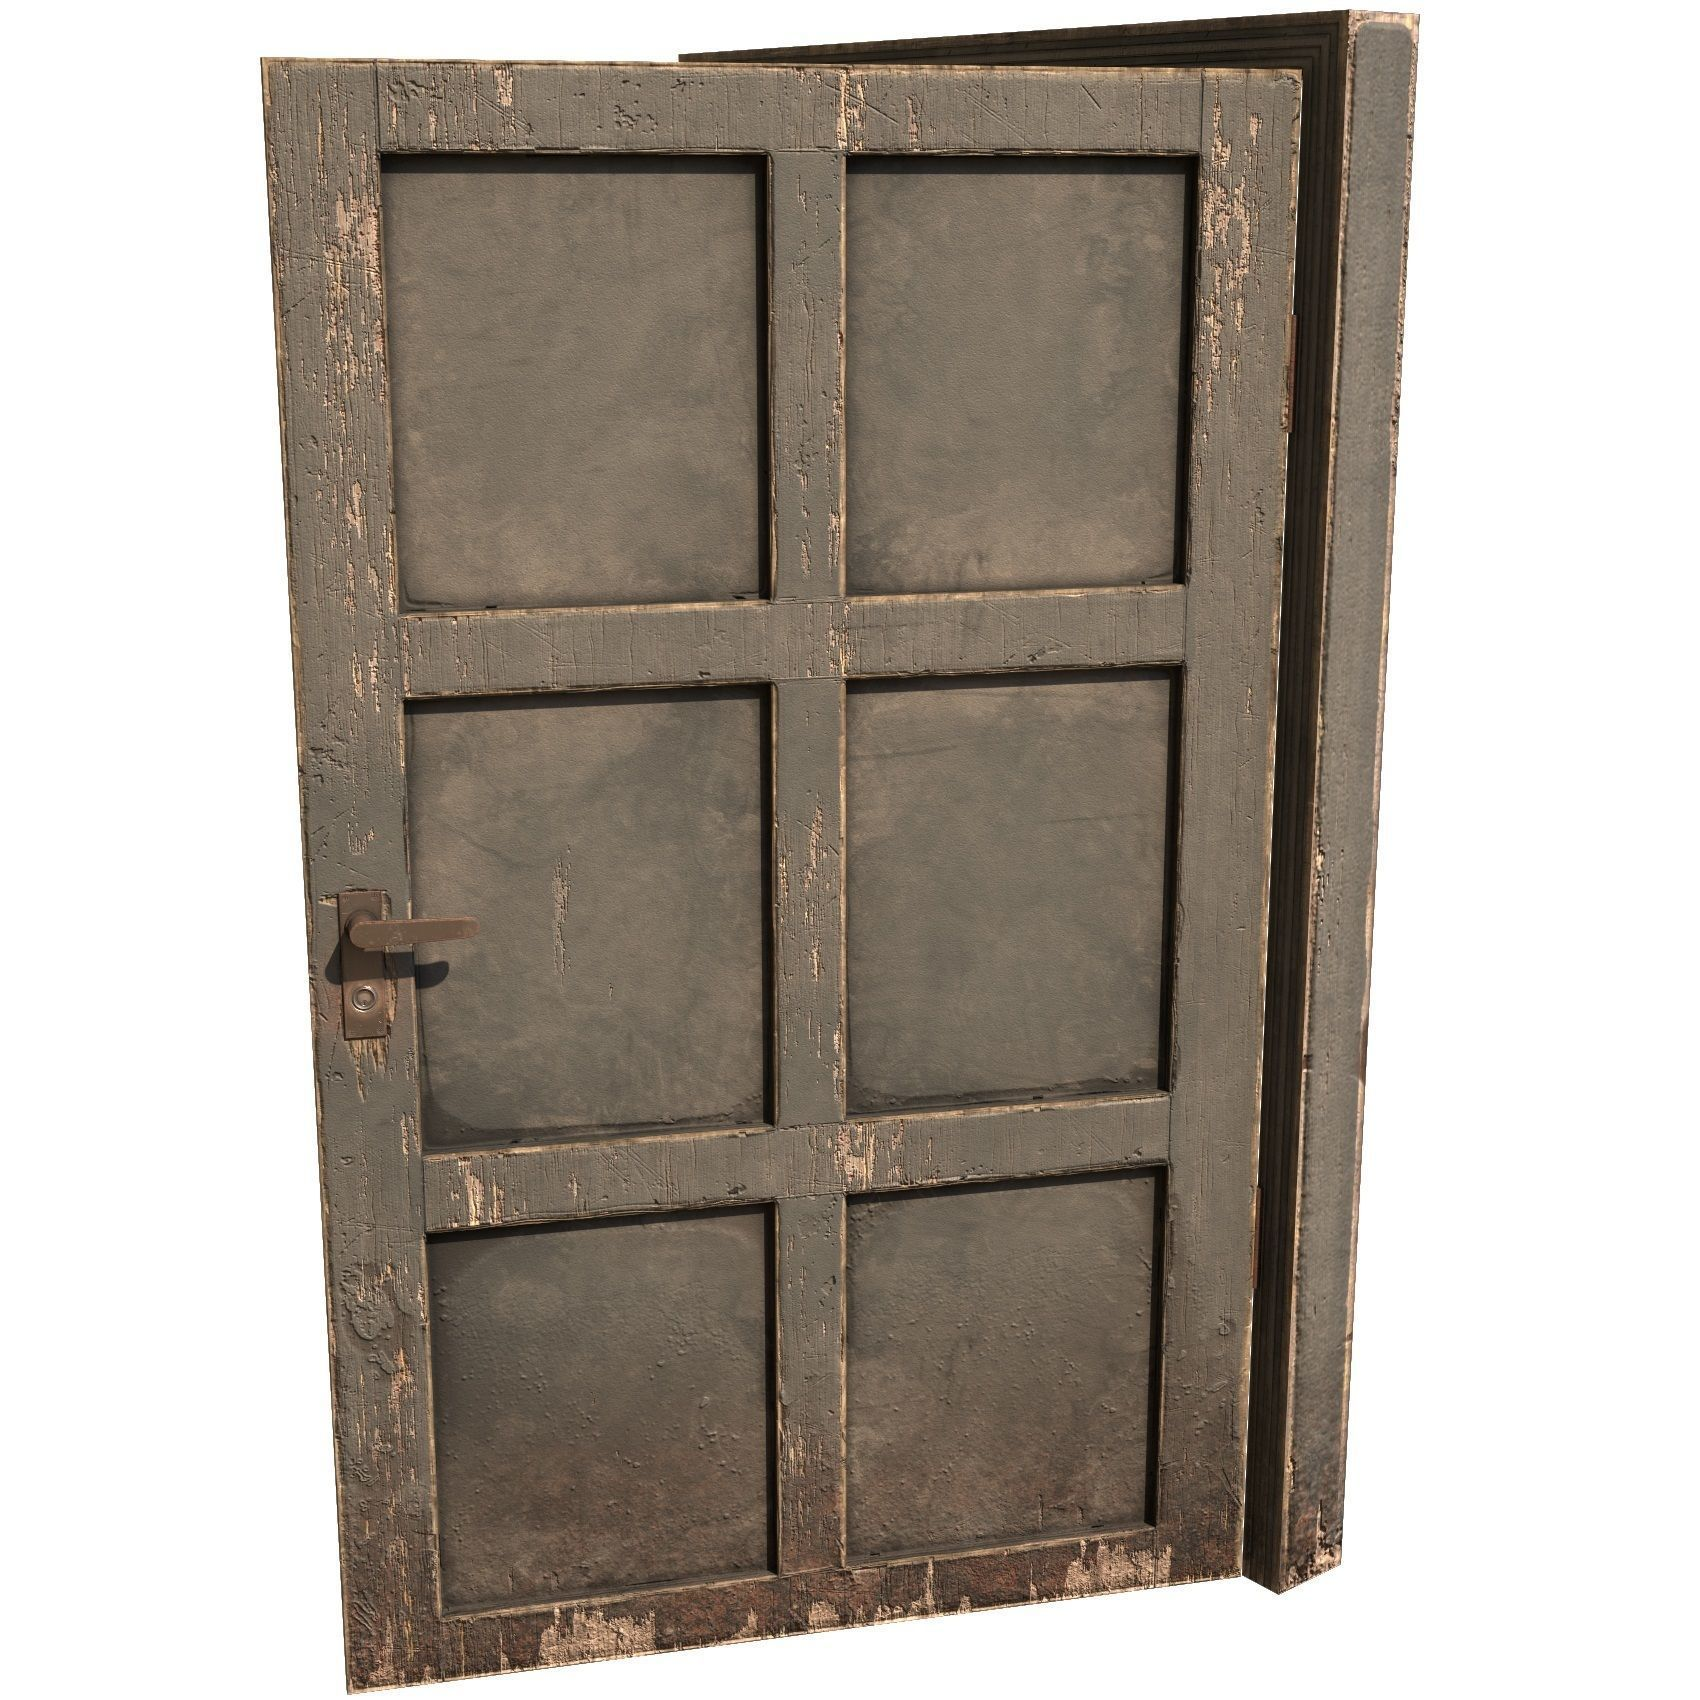 wooden Door - C type